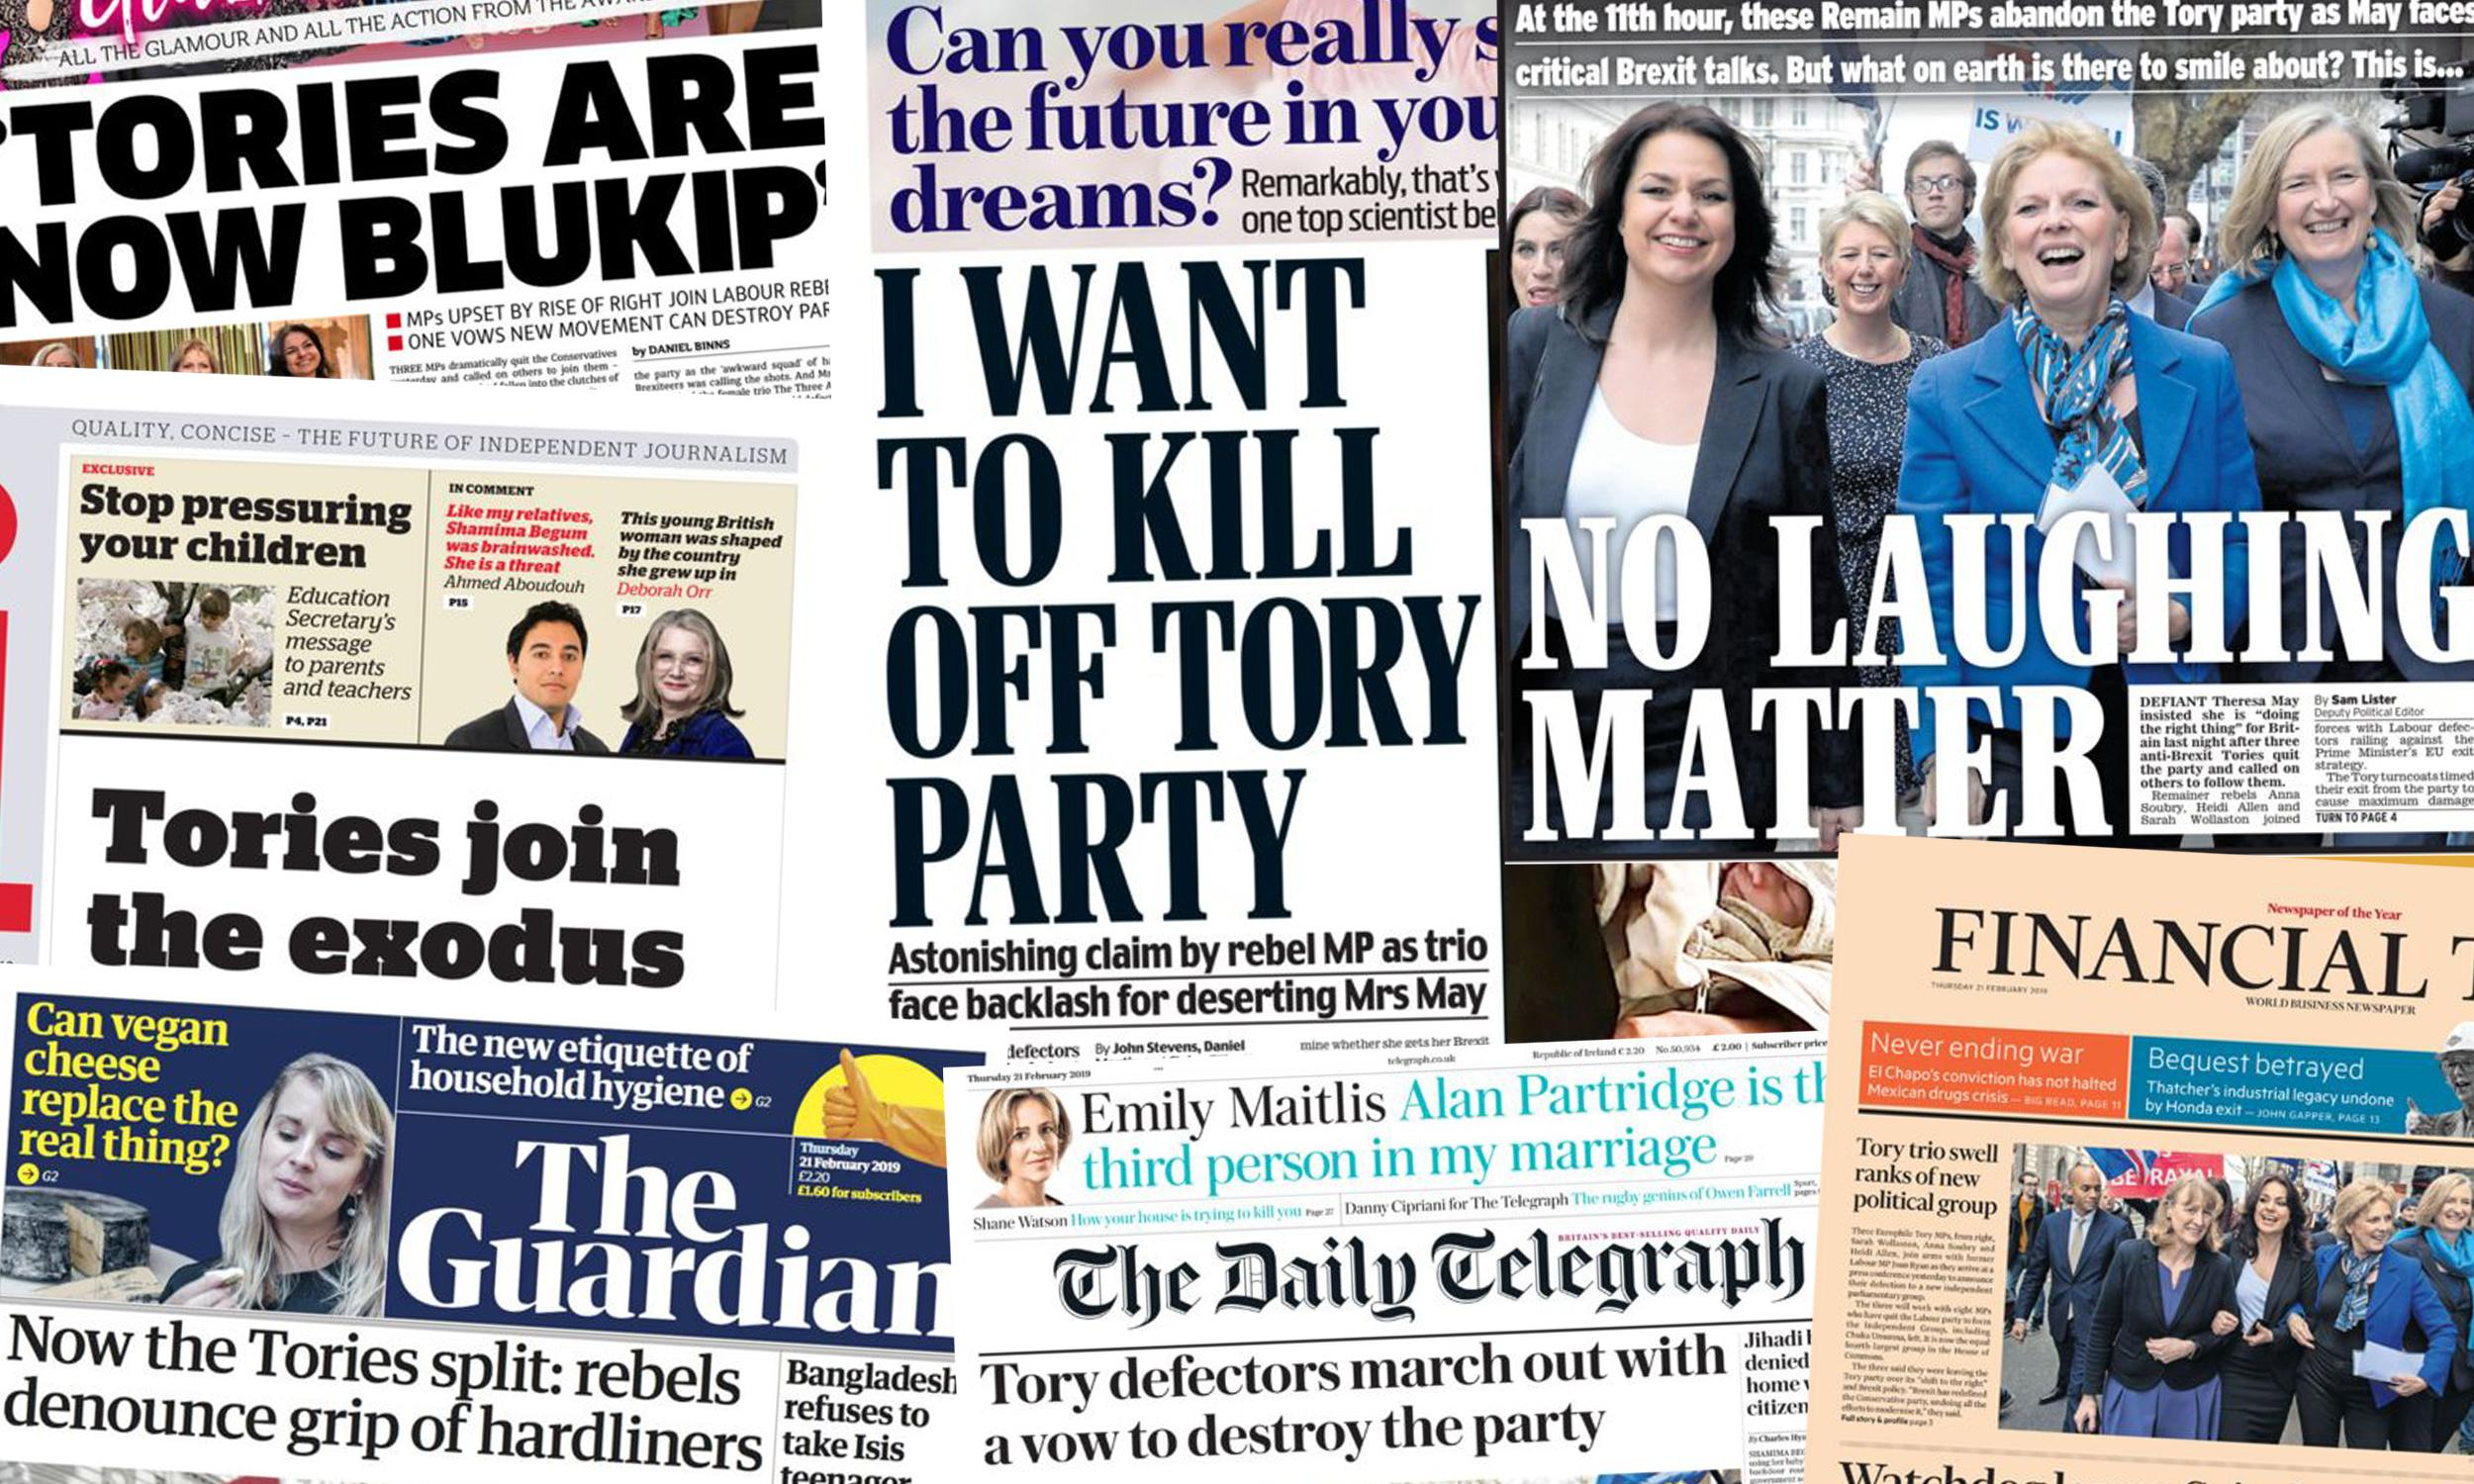 'Tories in meltdown': what the papers say about party split